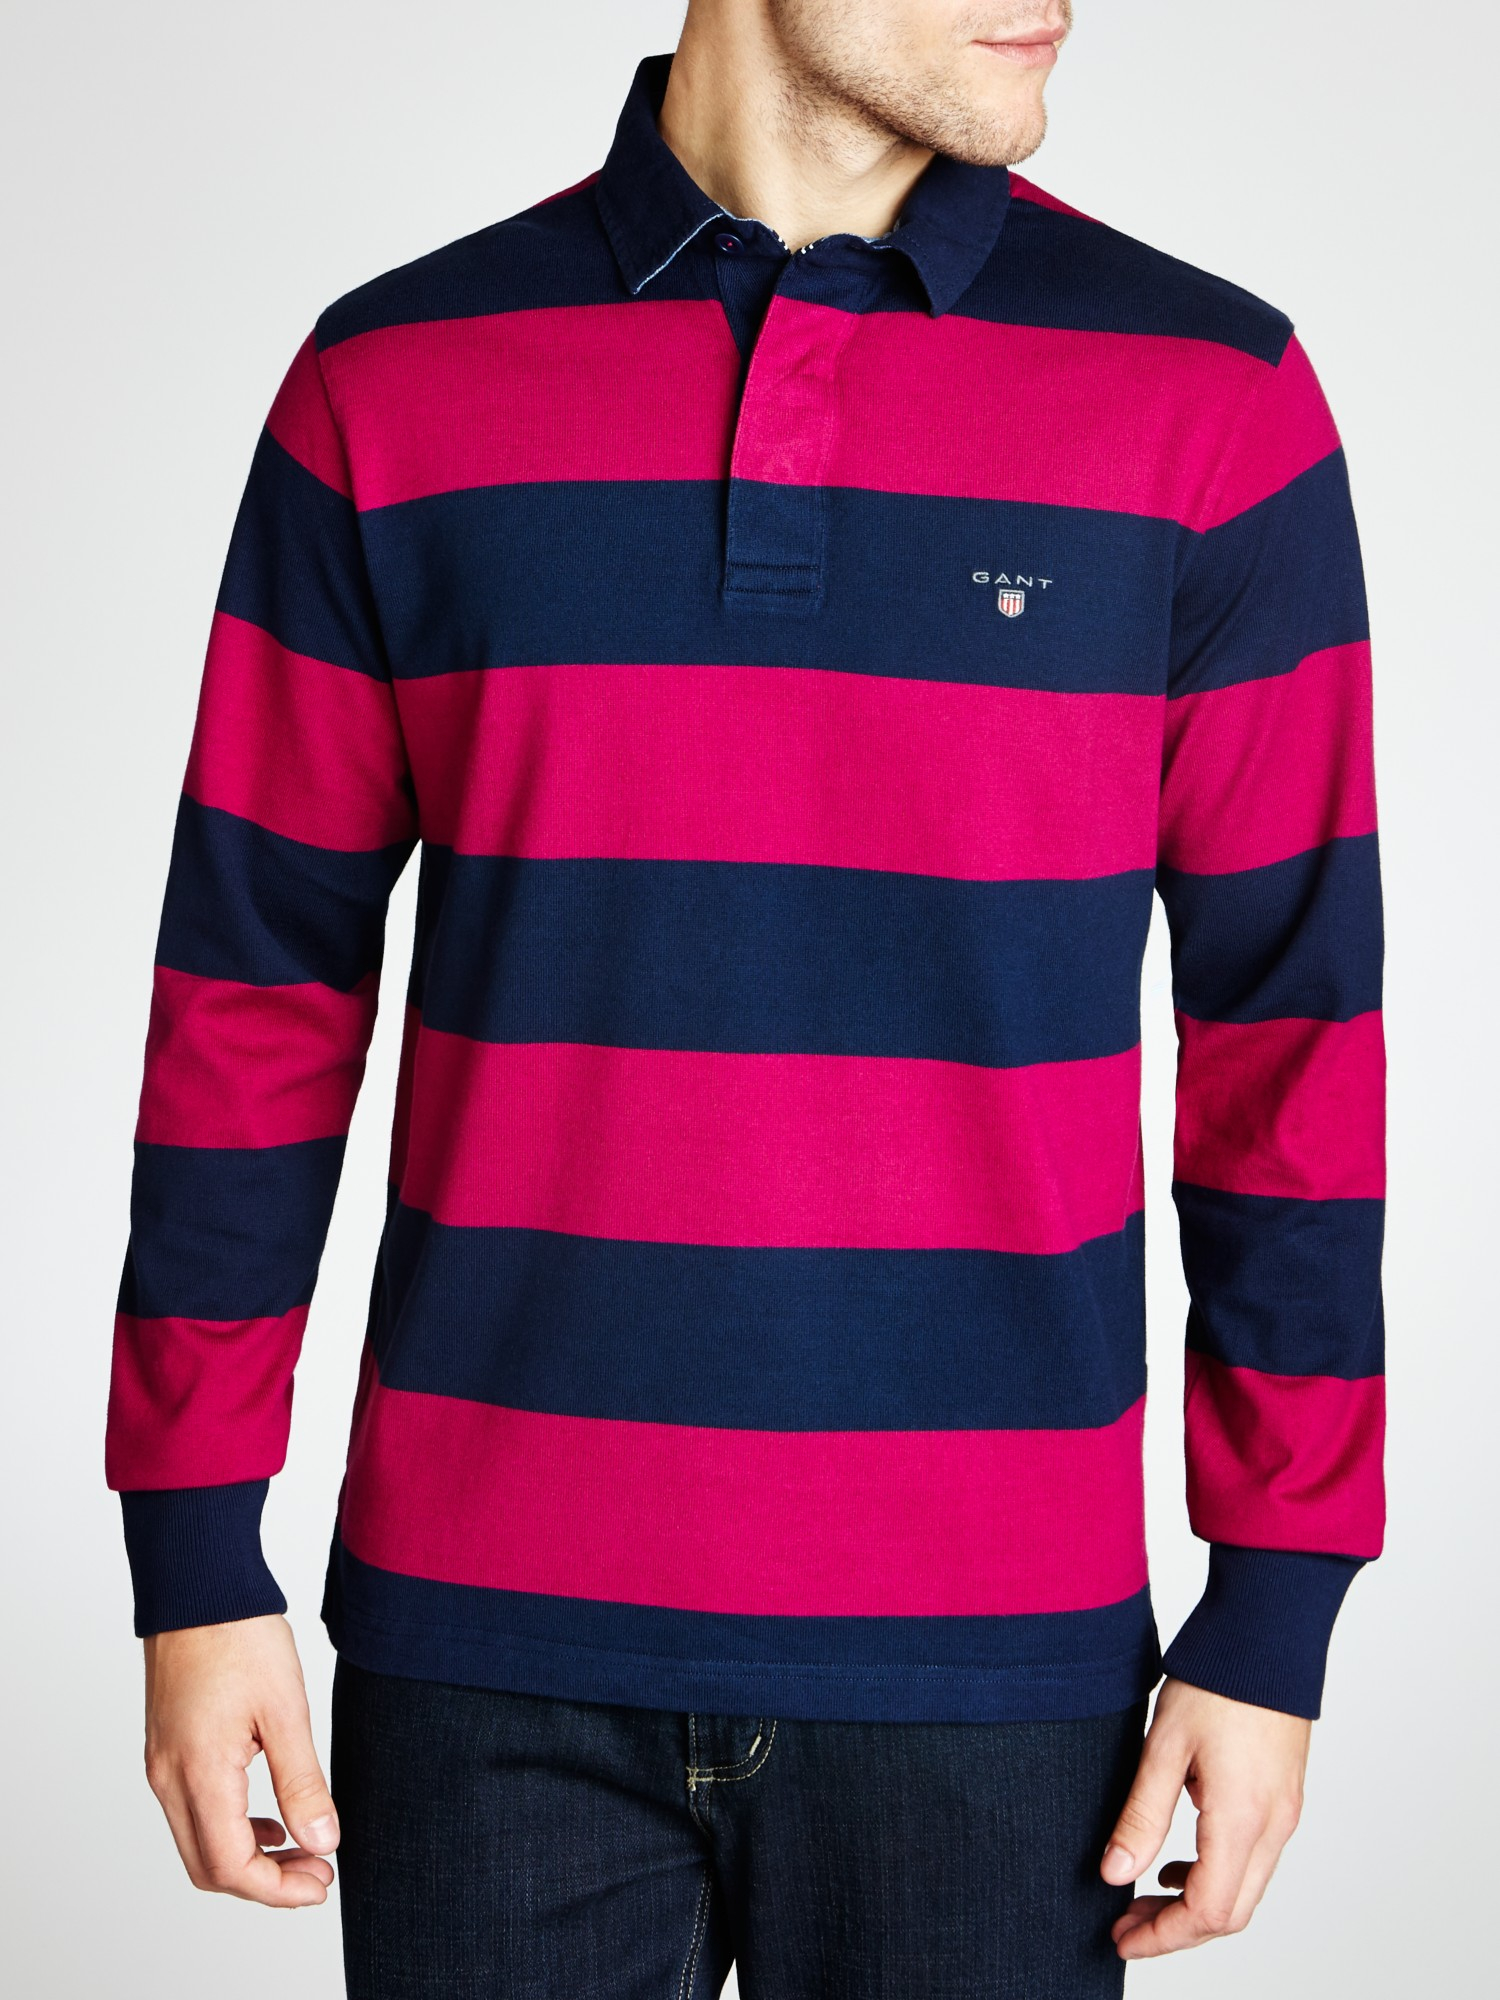 75405a64051 GANT Bar Stripe Long Sleeve Rugby Shirt in Purple for Men - Lyst